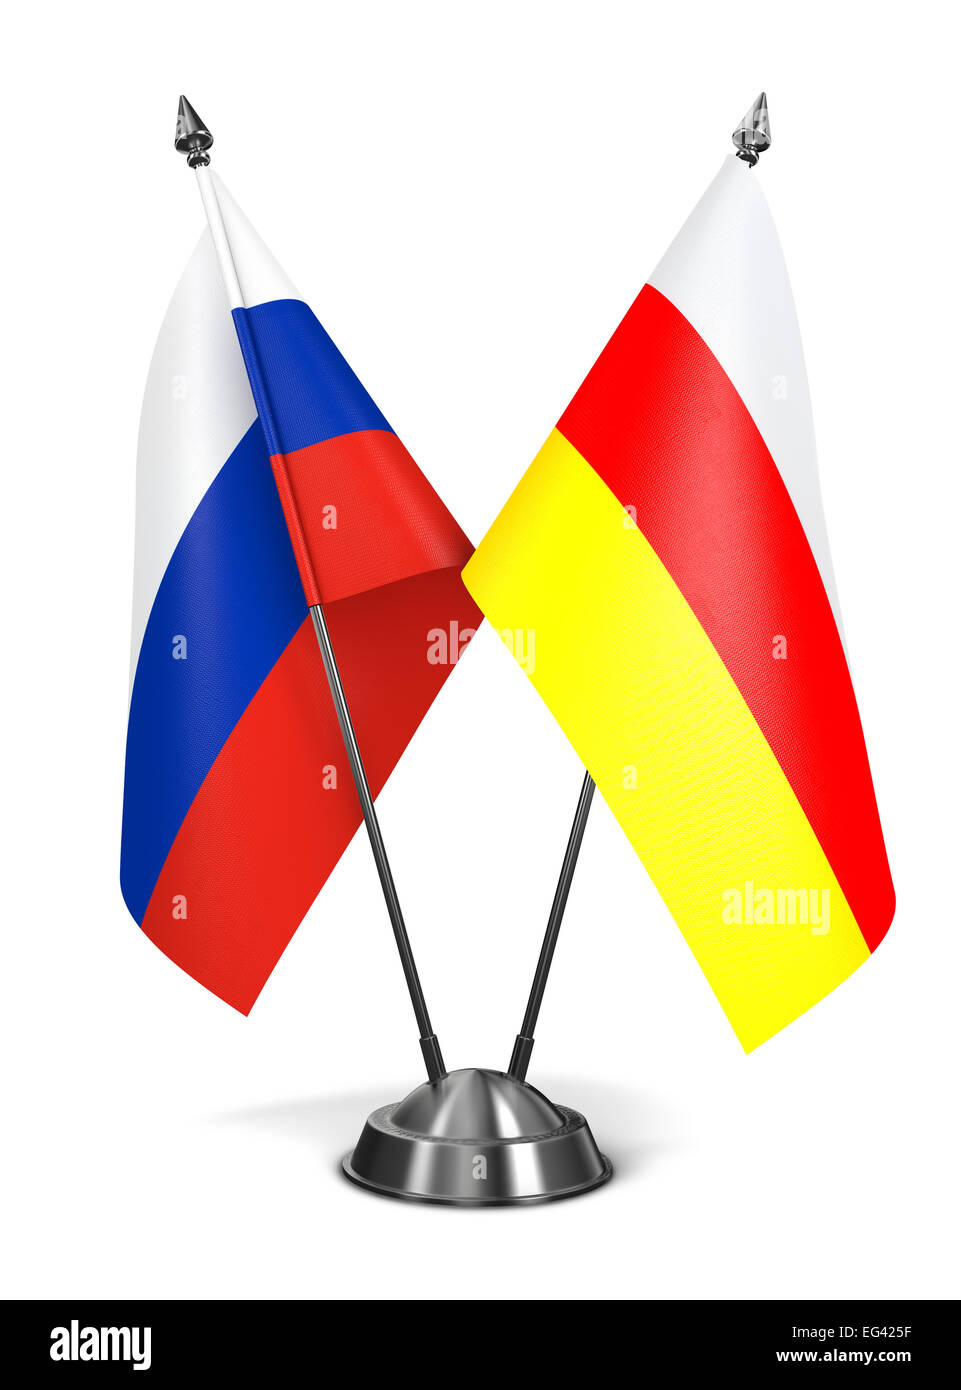 Russia and South Ossetia - Miniature Flags. - Stock Image